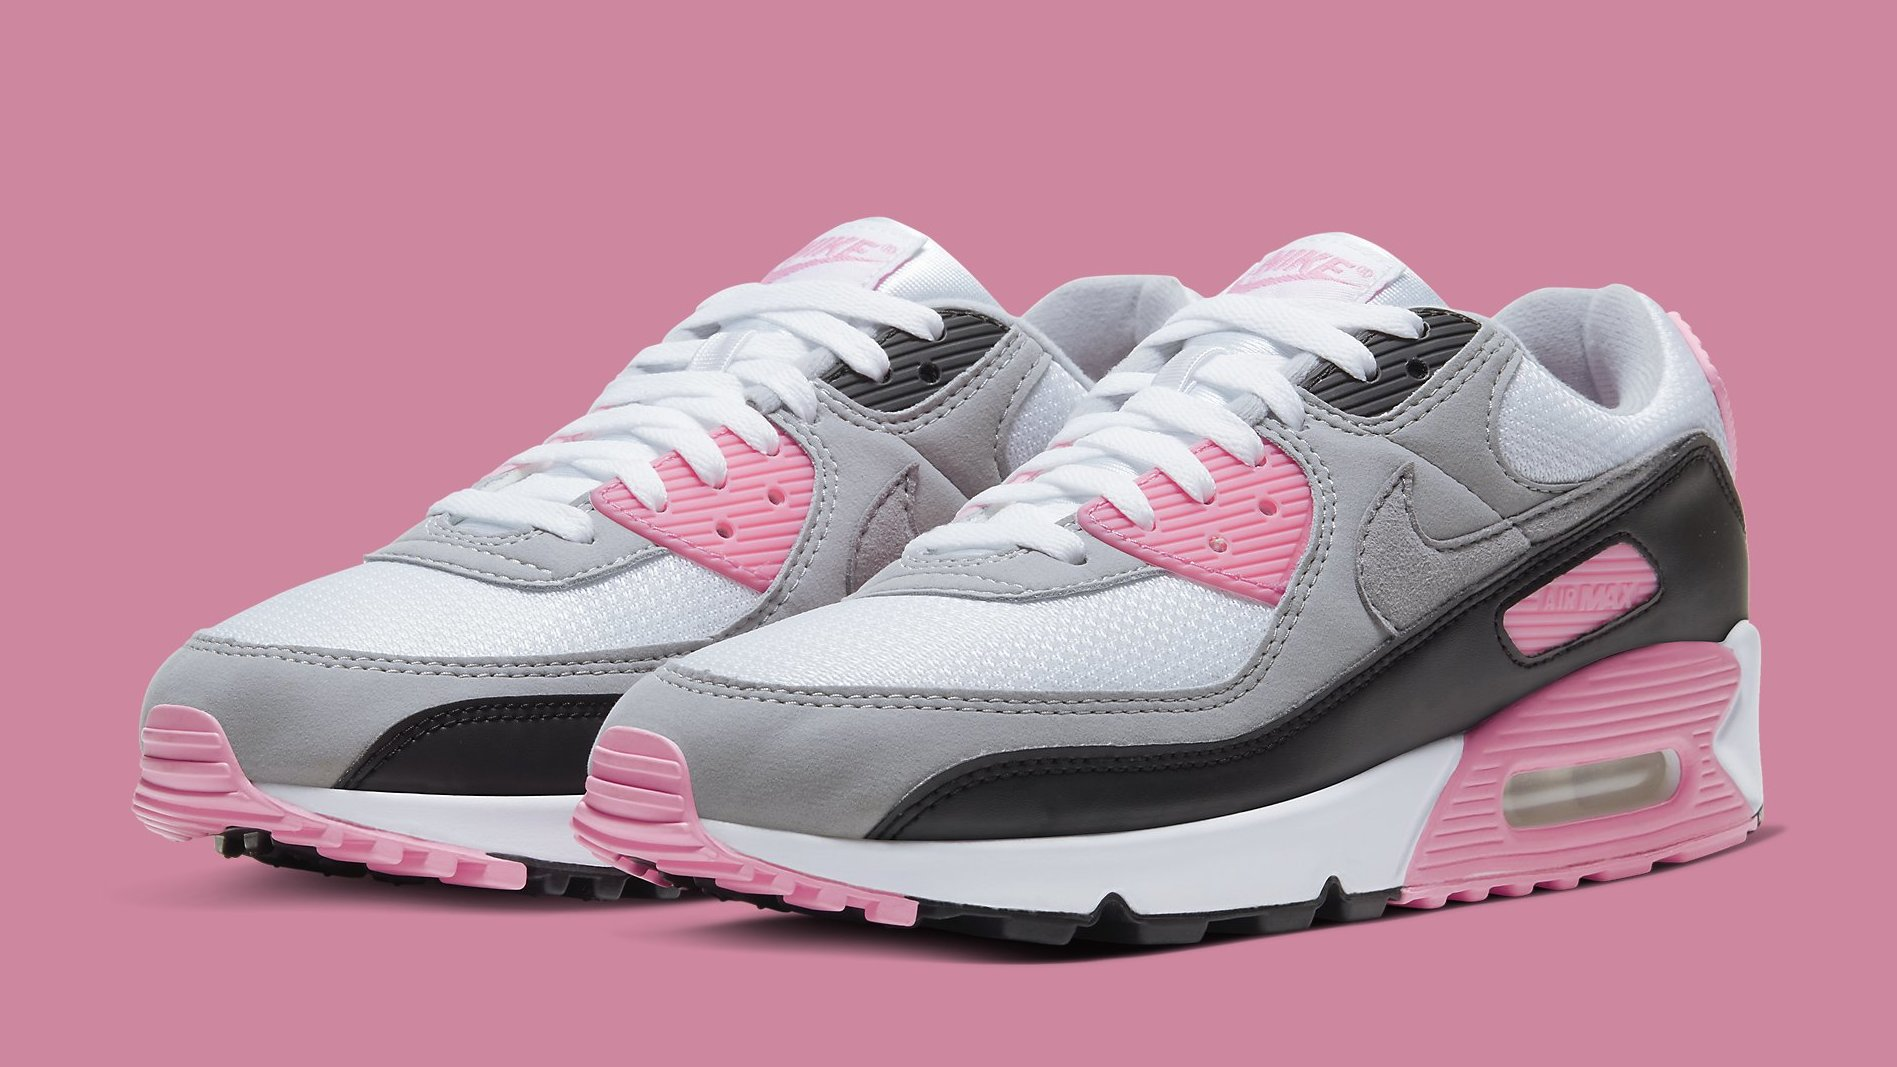 Consciente de Disponible Subir y bajar  Nike Air Max 90 Women's 'Rose' Release Date CD0881-101 | Sole Collector